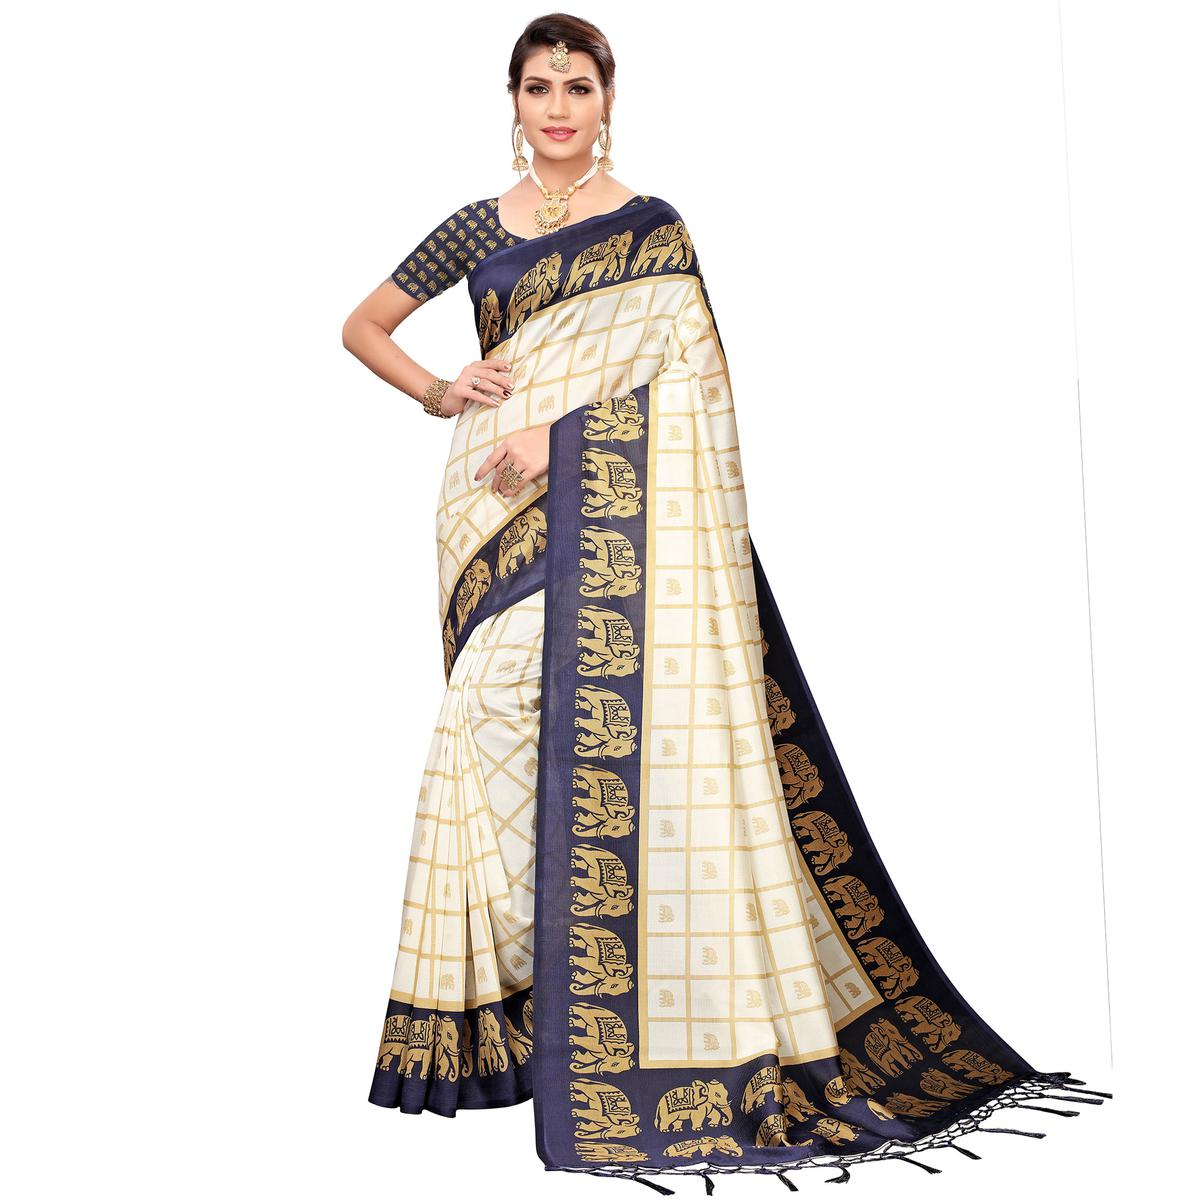 Sophisticated Off White-Navy Blue Colored Festive Wear Printed Mysore Silk Saree